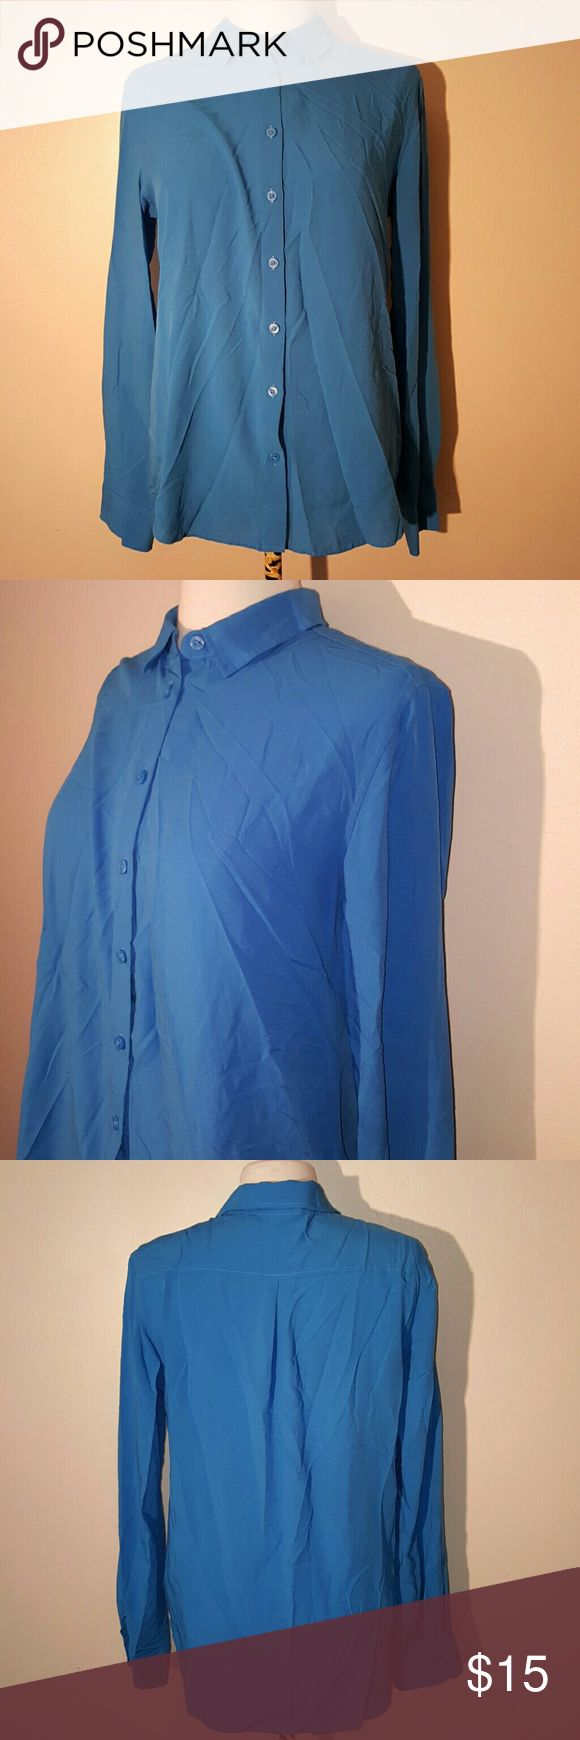 Uniqlo Blue Button Down Blouse This is a size medium button down is great condition. All buttons are attached.  No trades. Uniqlo Tops Button Down Shirts